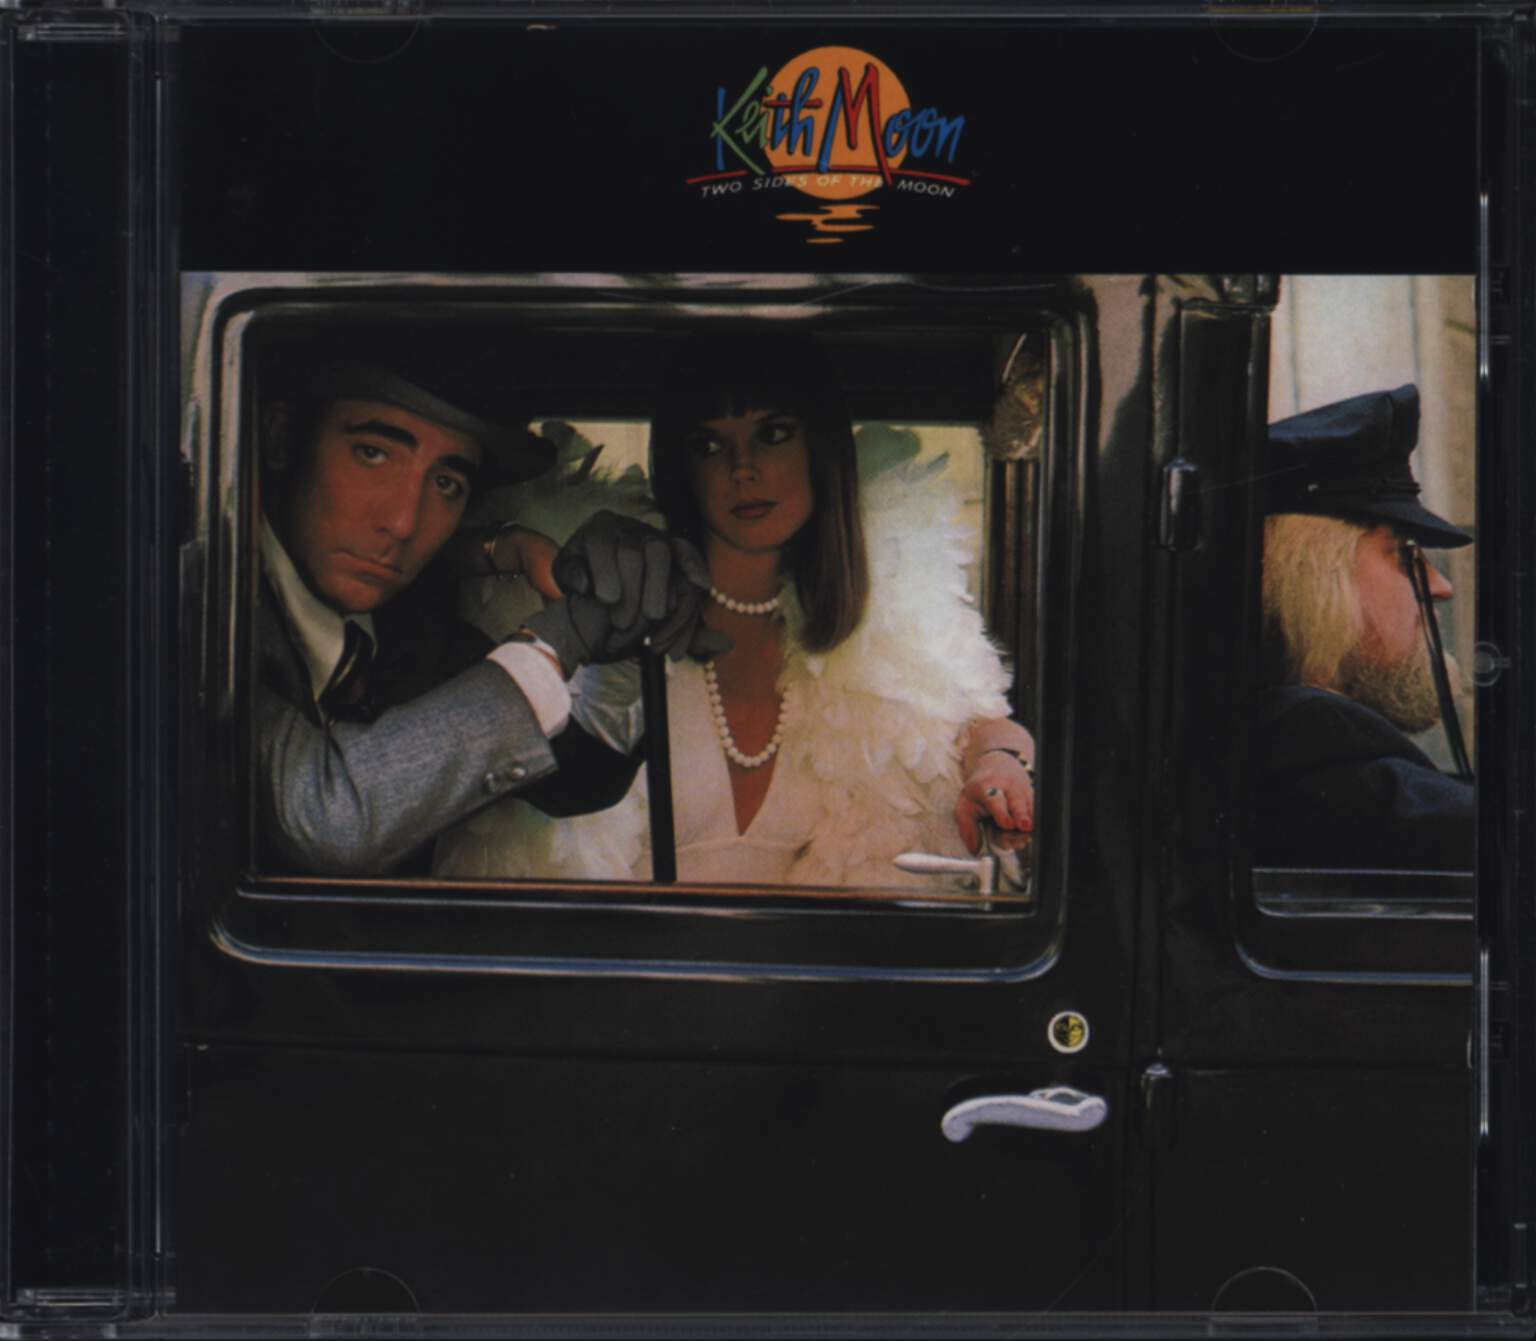 Keith Moon: Two Sides Of The Moon, CD